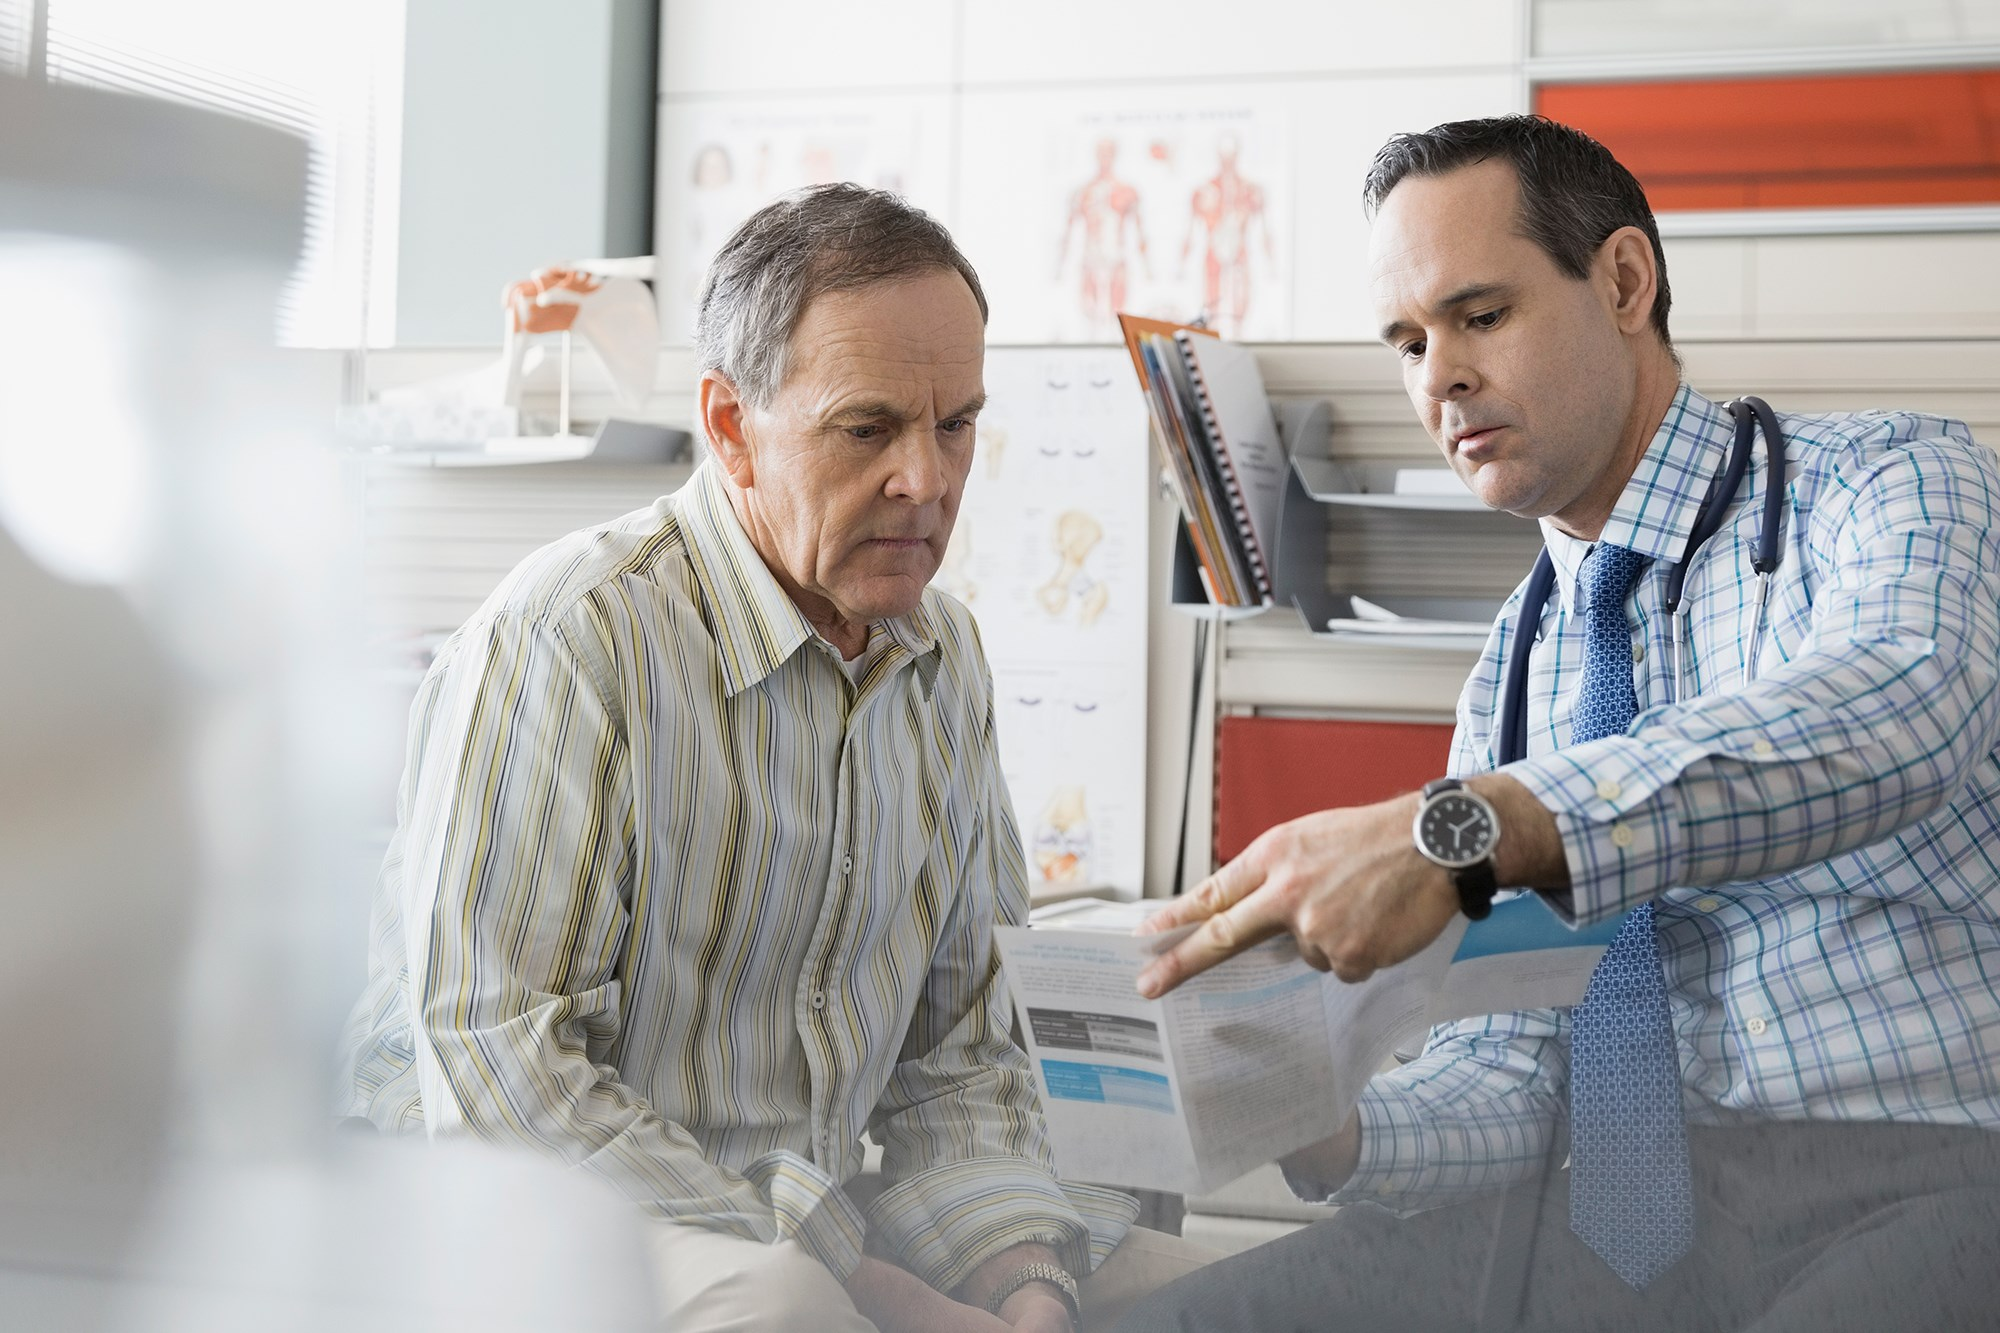 Patients scored clinician interactions high, but smoking and dietitian information scored lower.